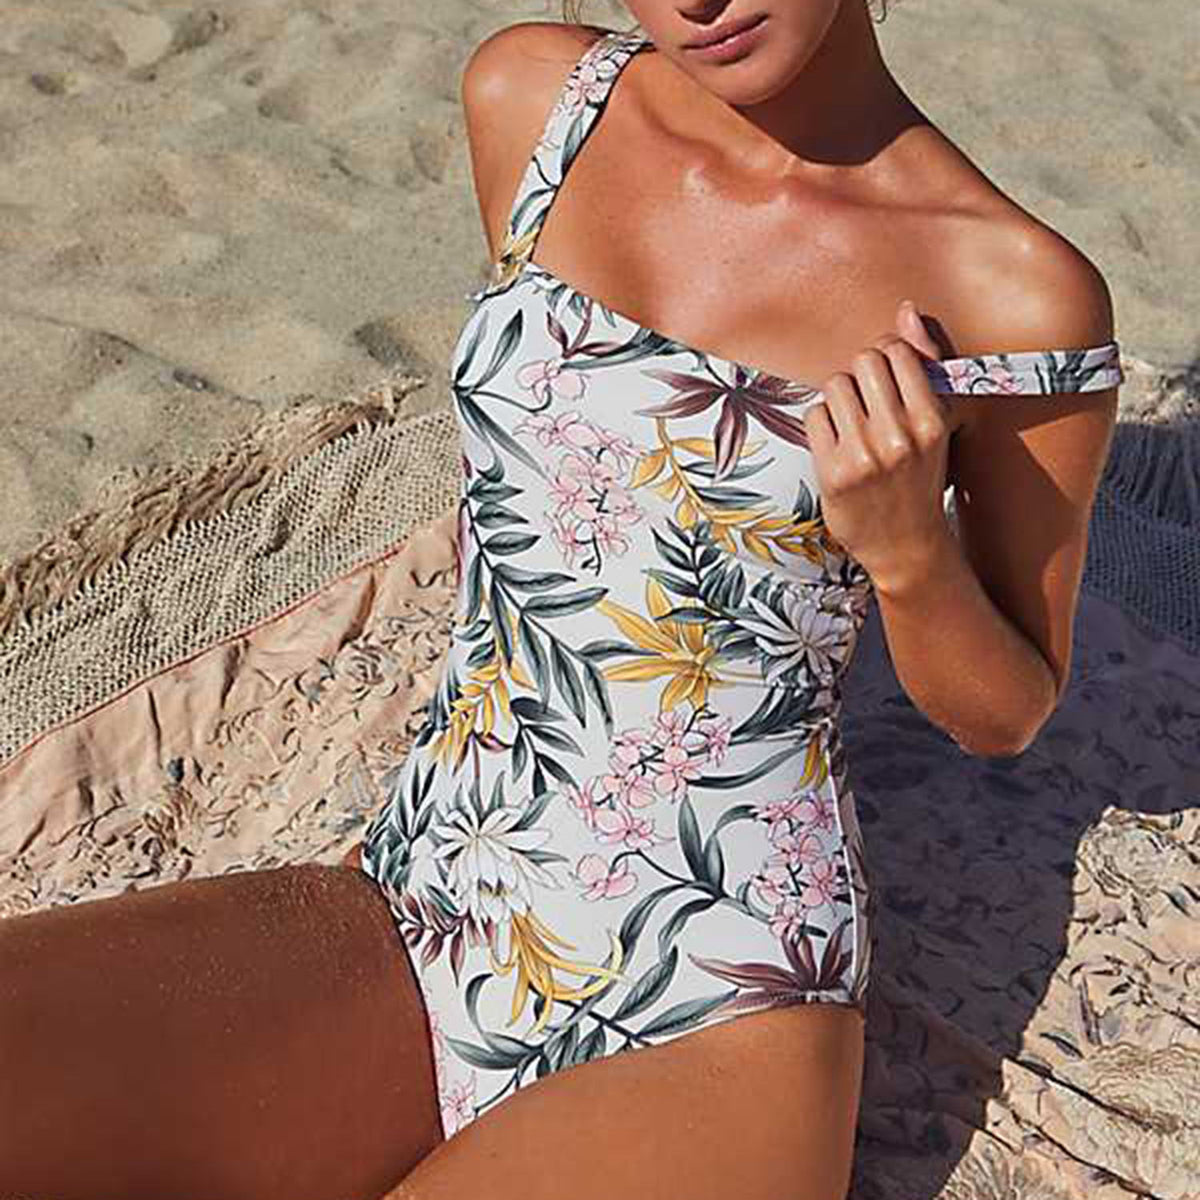 Retro Style Floral Print One Piece Swimsuit - worthtryit.com